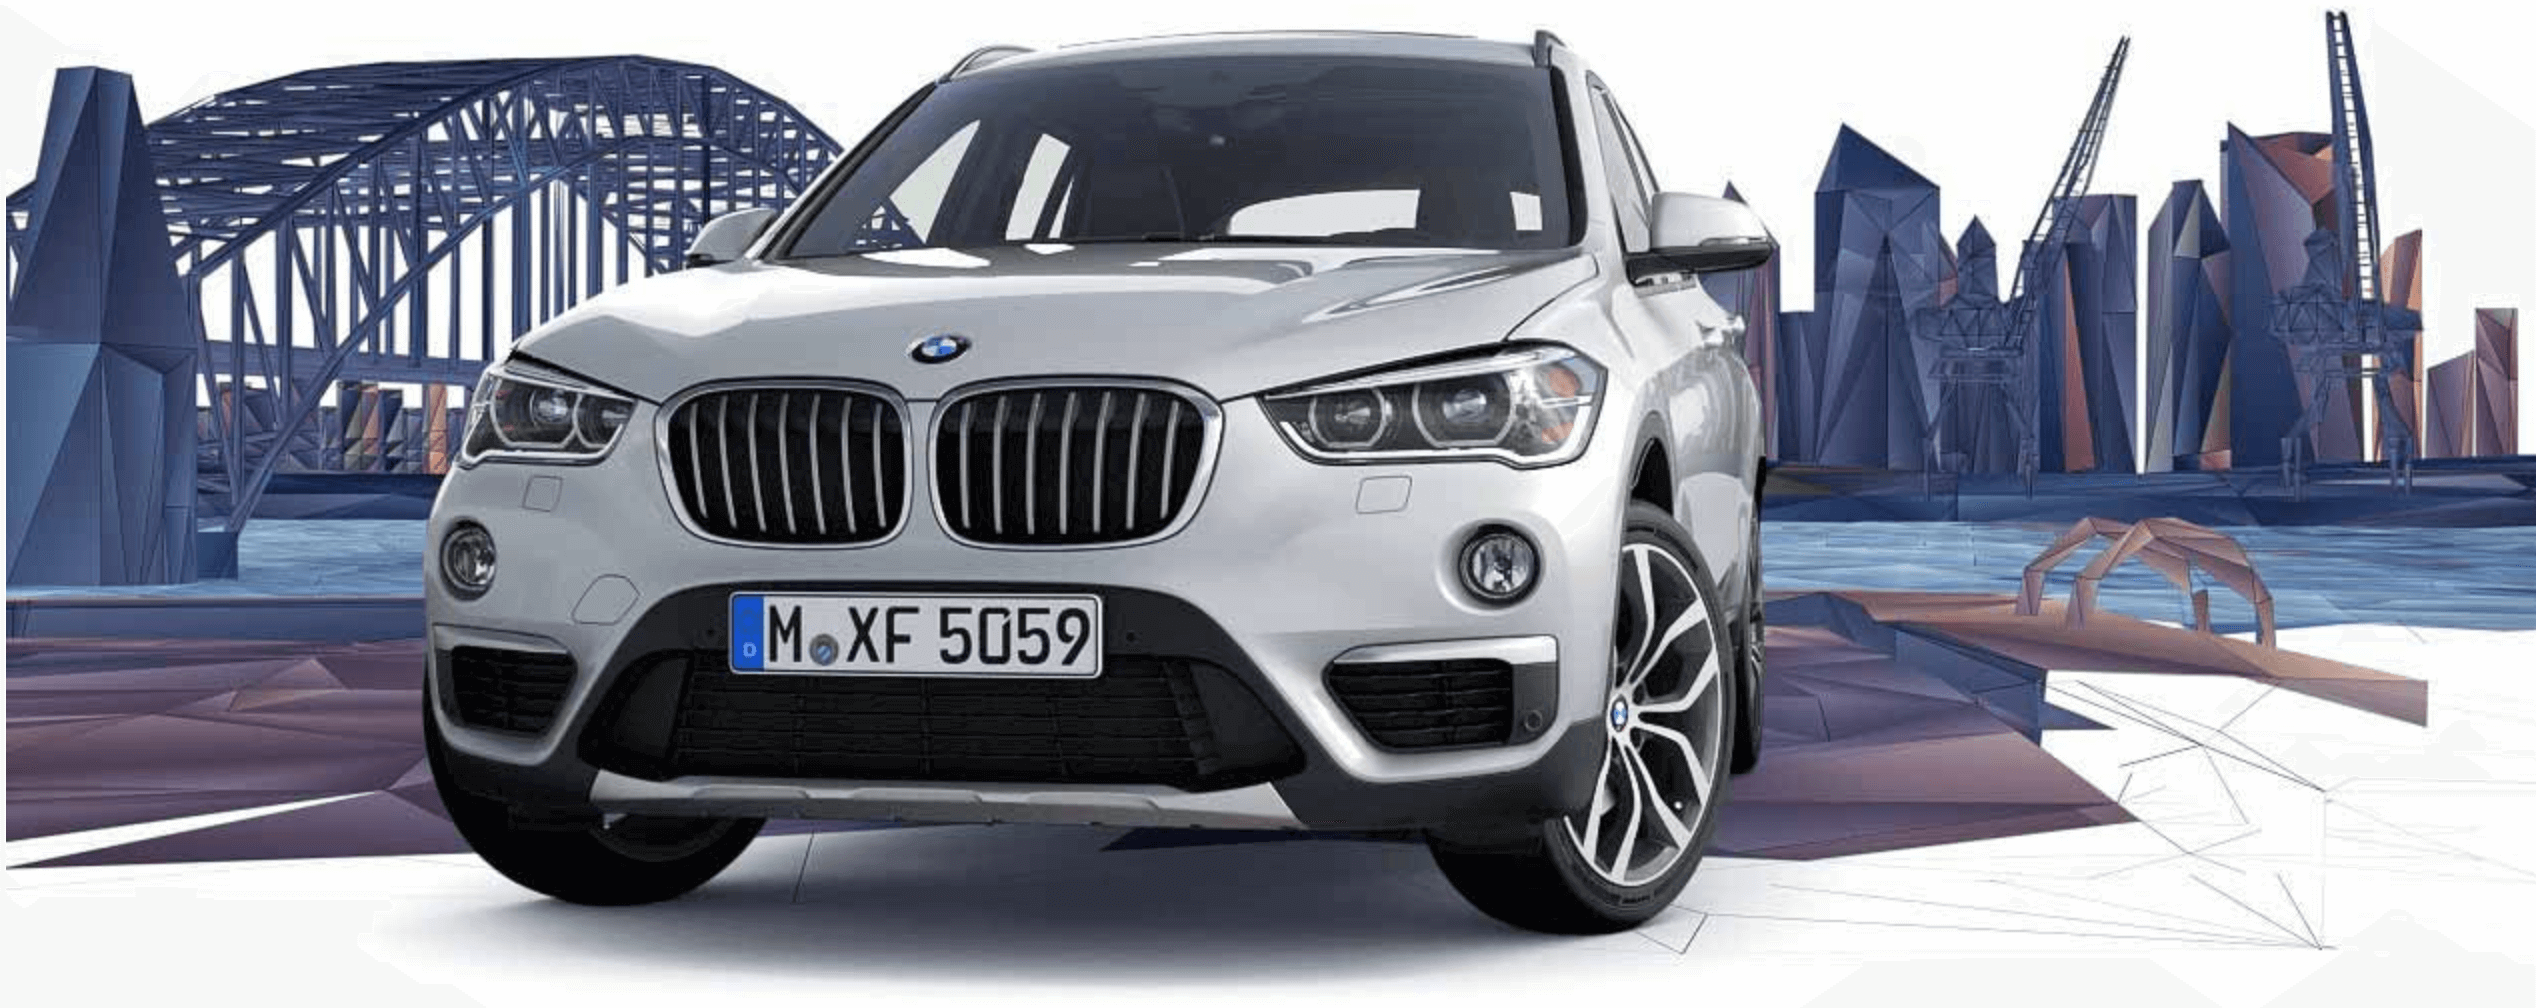 bmw x1 leasing f r 258 euro im monat brutto. Black Bedroom Furniture Sets. Home Design Ideas